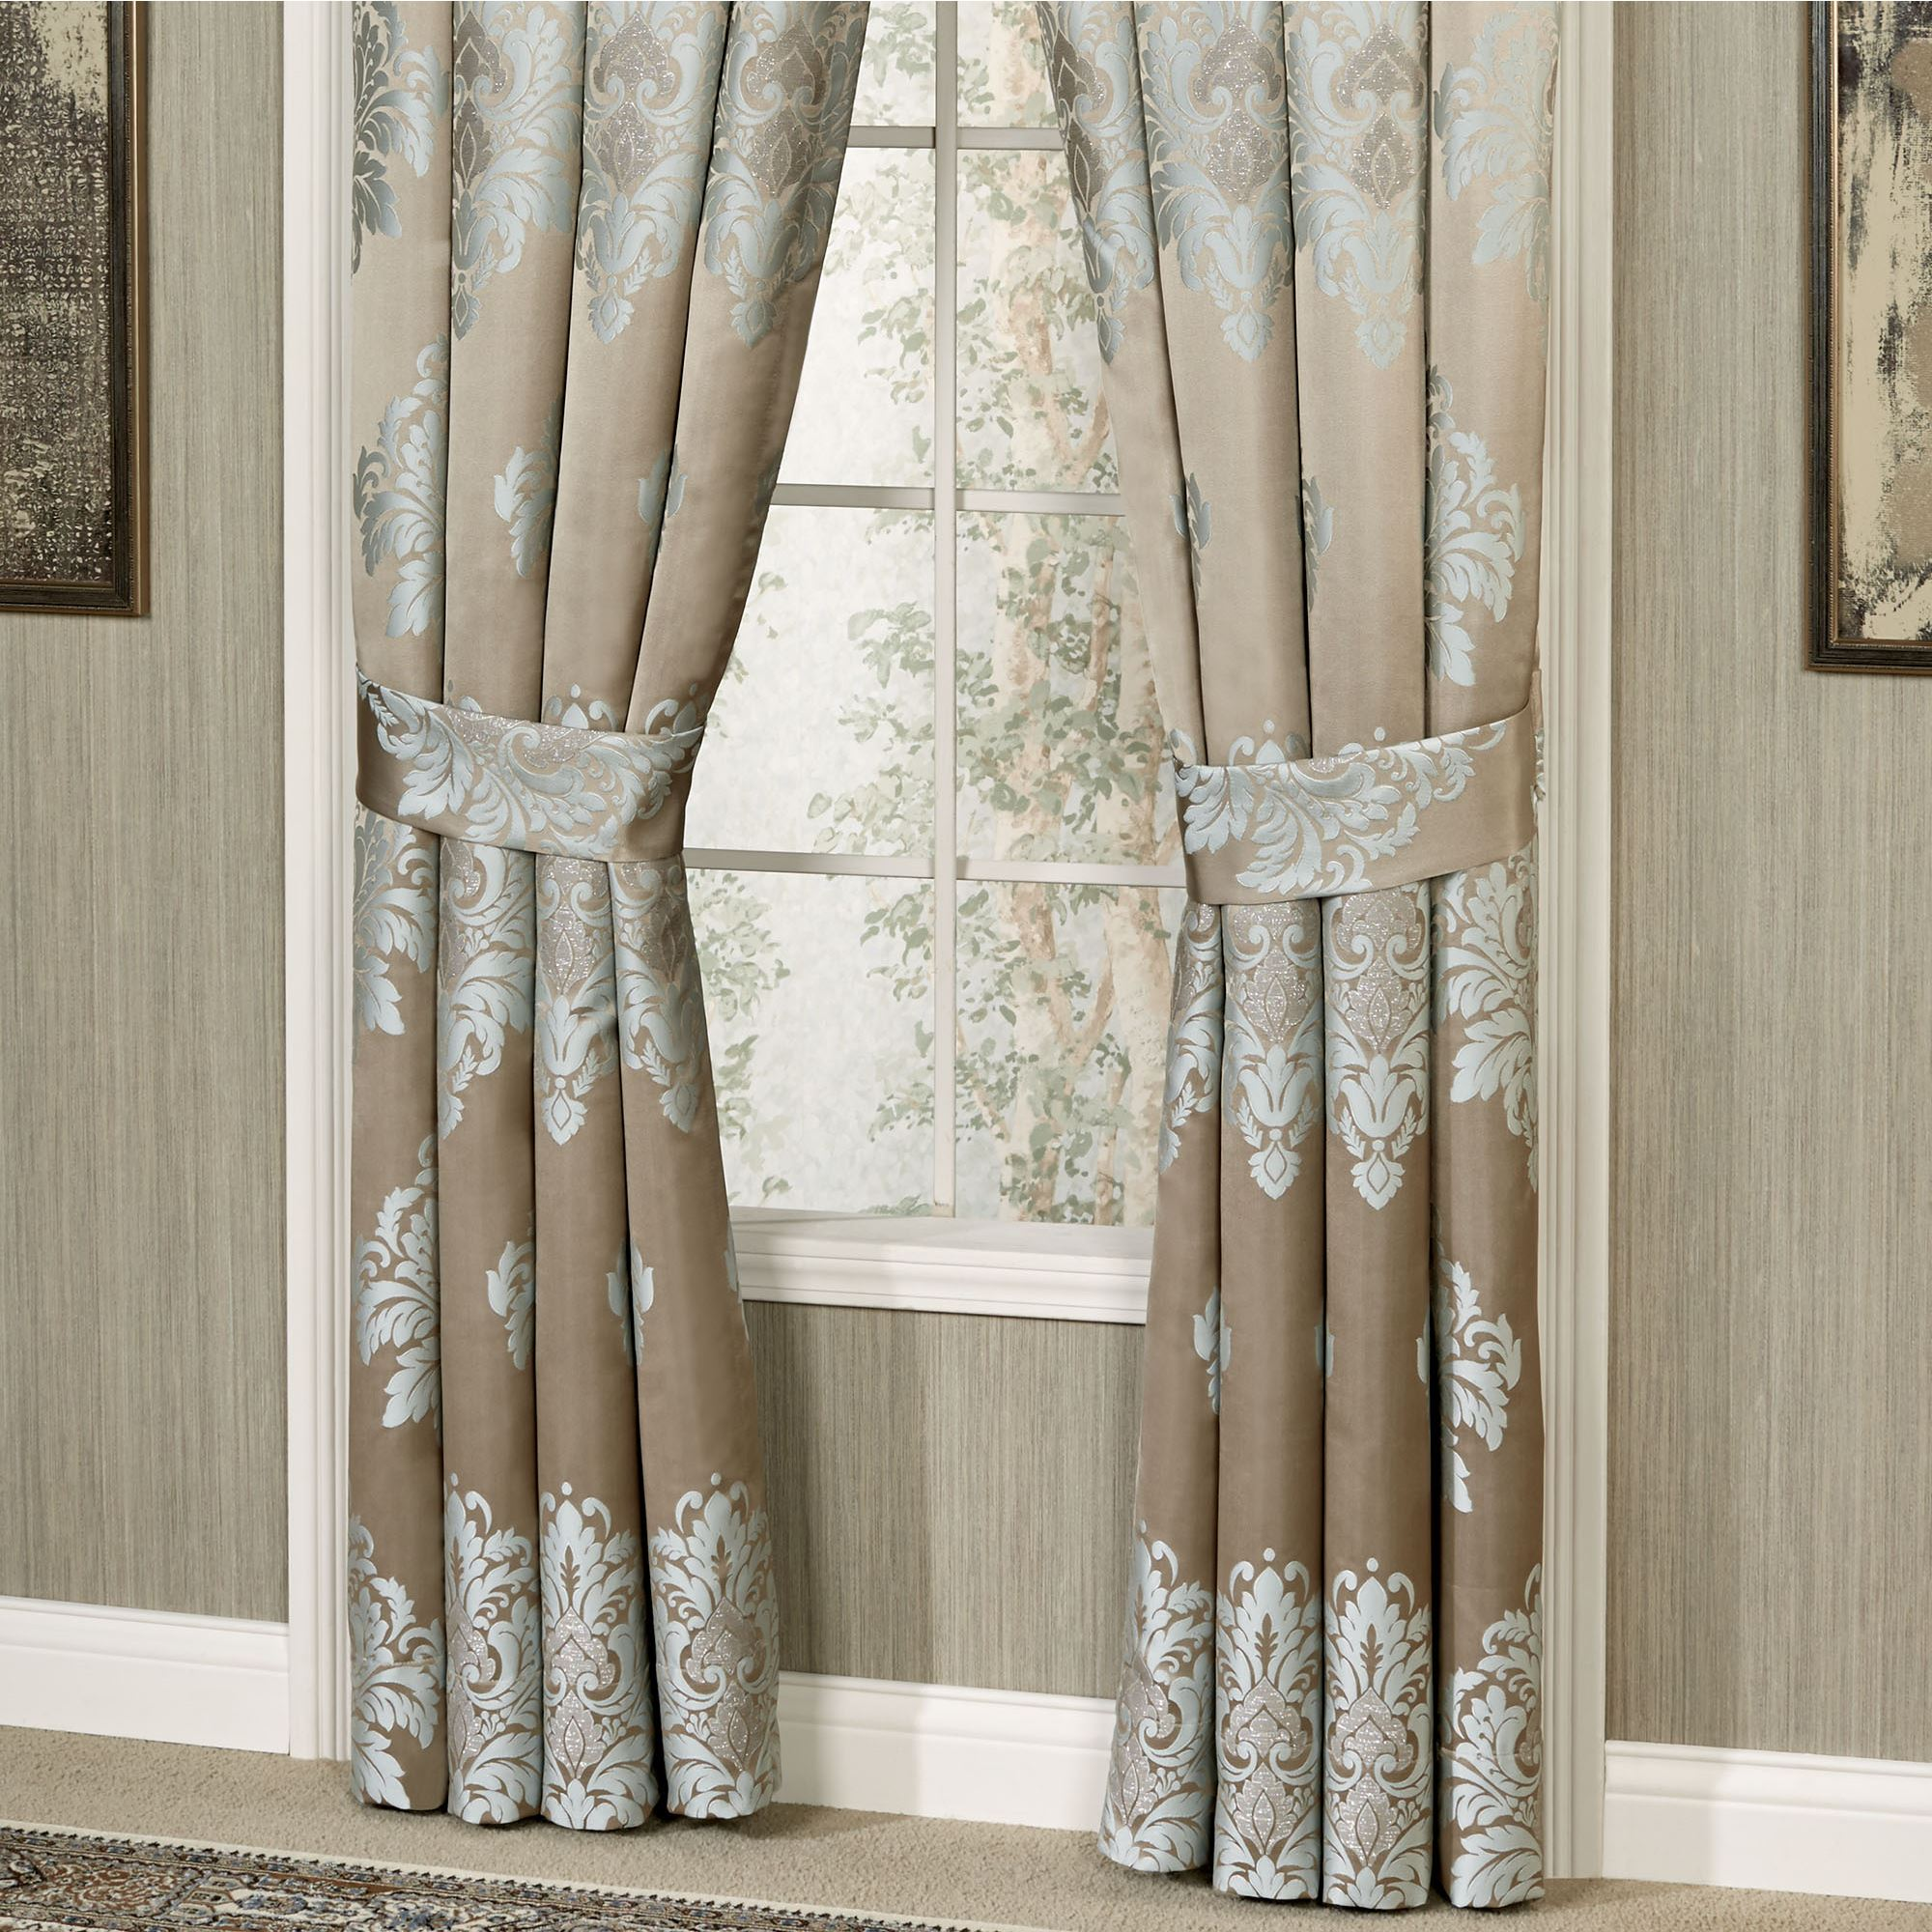 Traditional Curtains Athena Waterfall Valance Window Treatment By J Queen New York